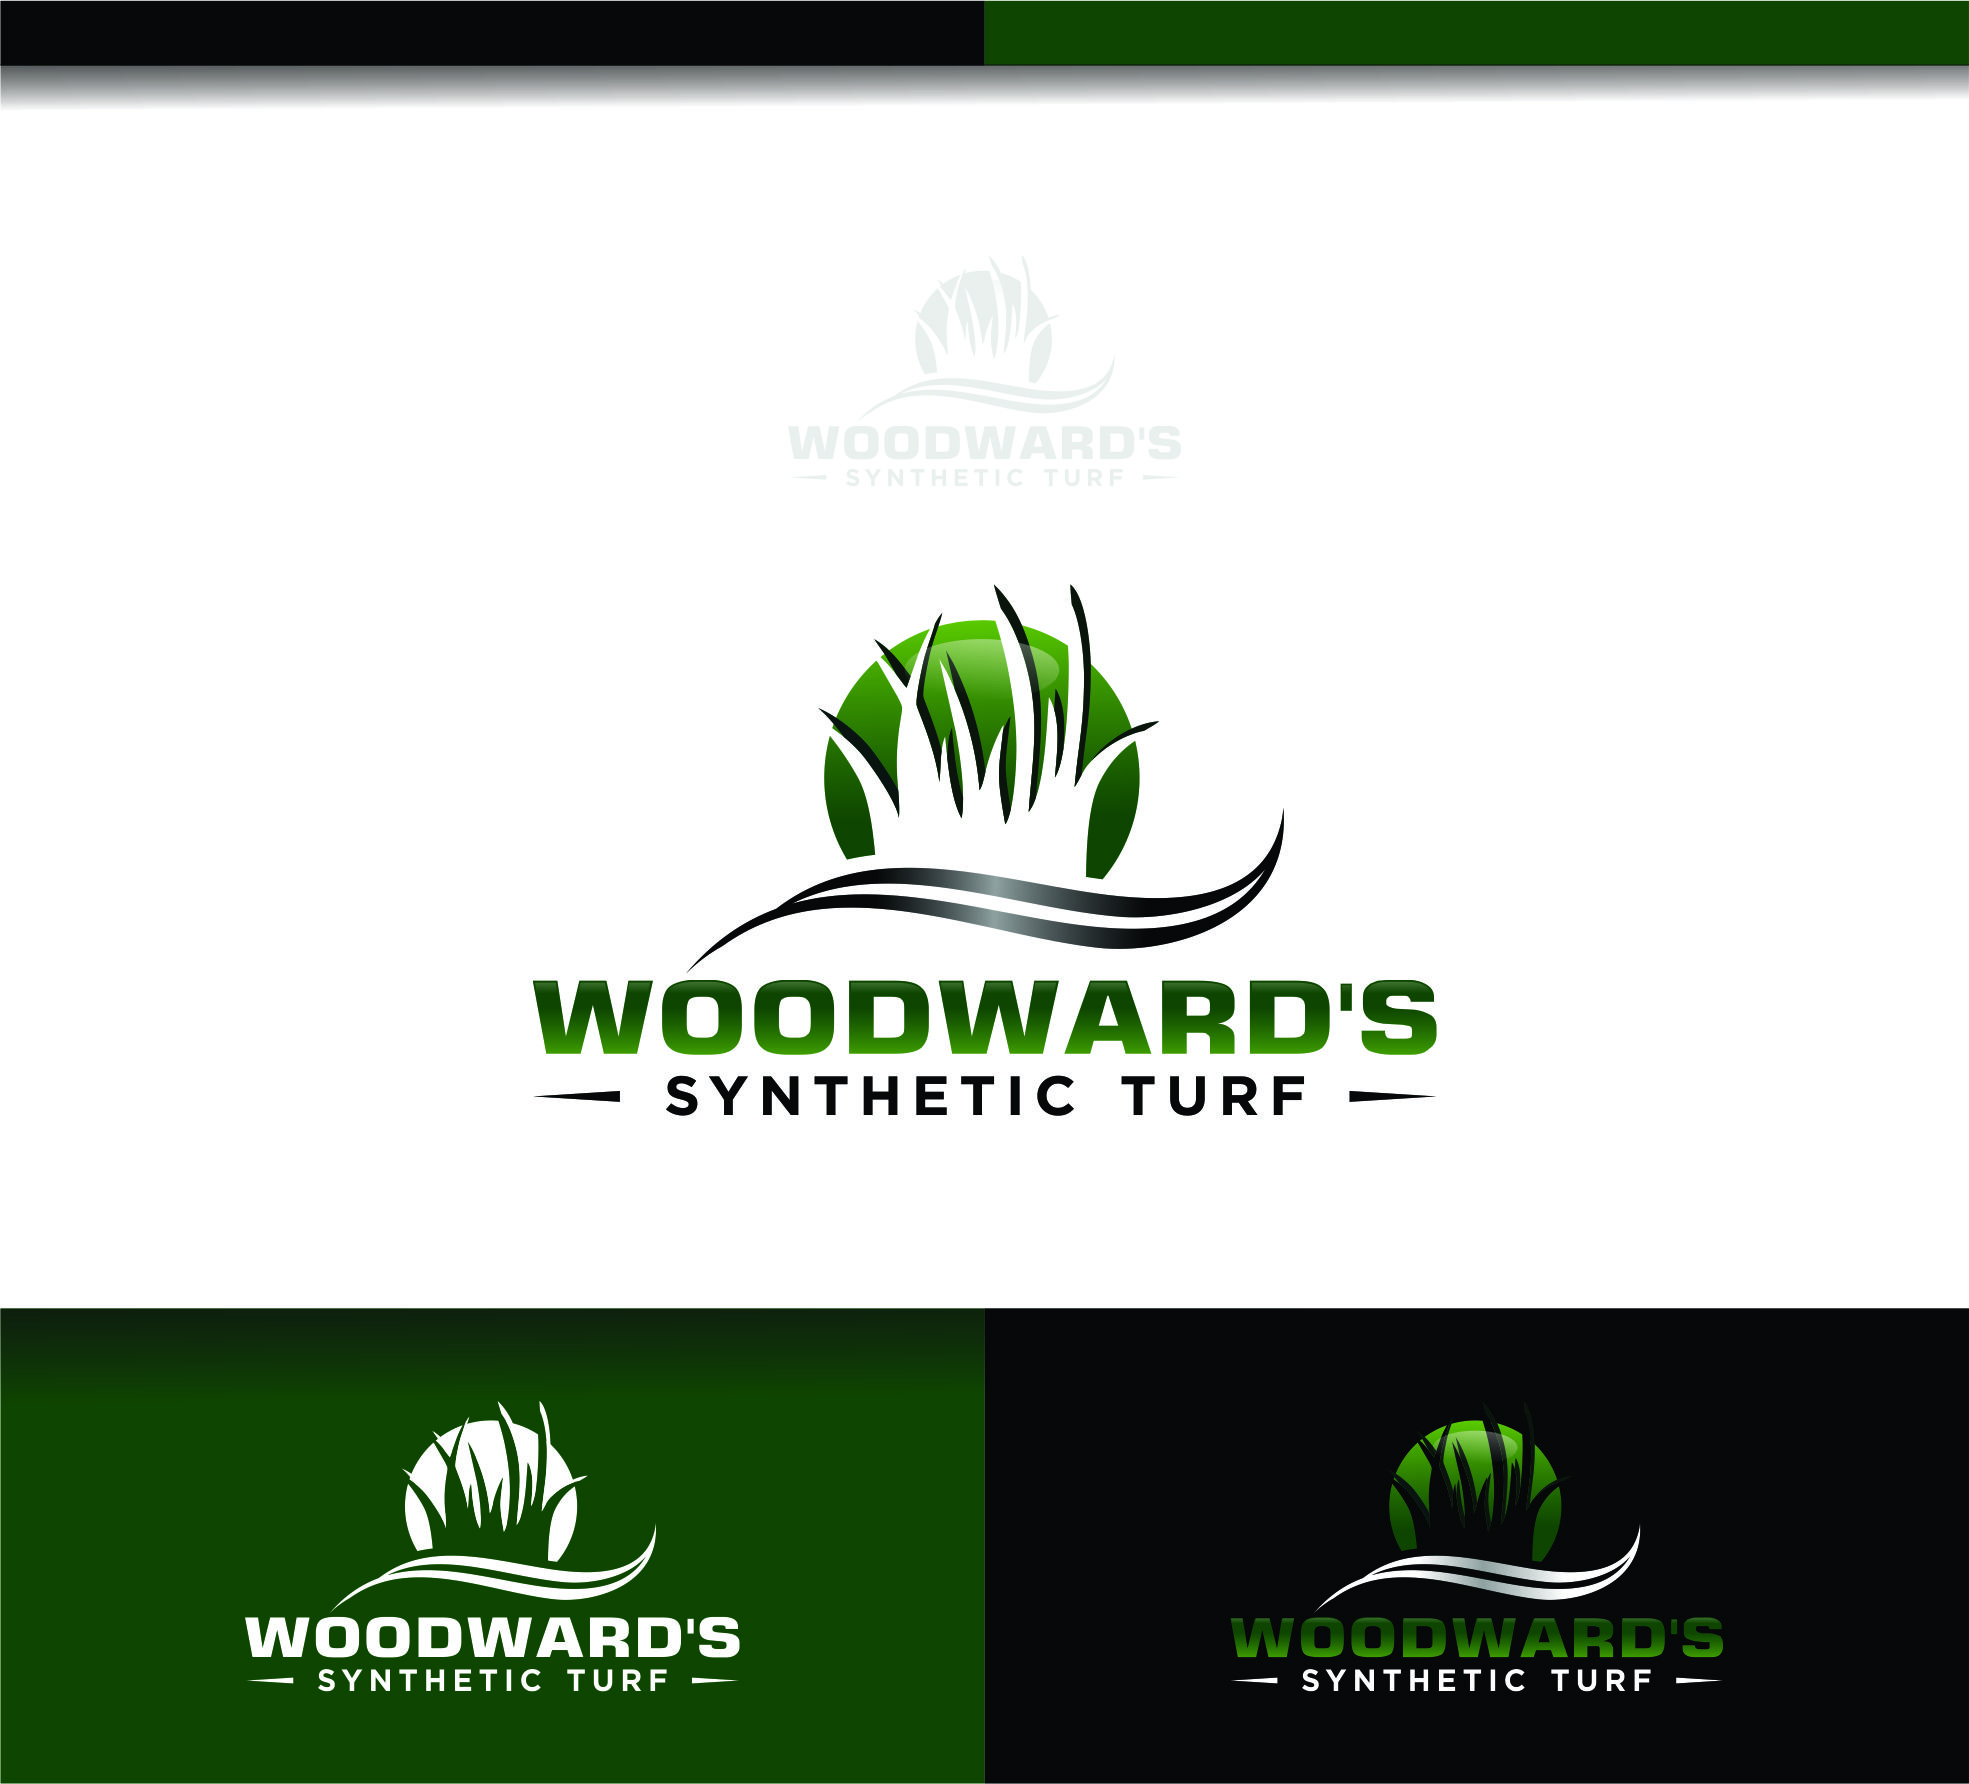 Logo Design by Raymond Garcia - Entry No. 72 in the Logo Design Contest Artistic Logo Design for Woodward's Synthetic Turf.